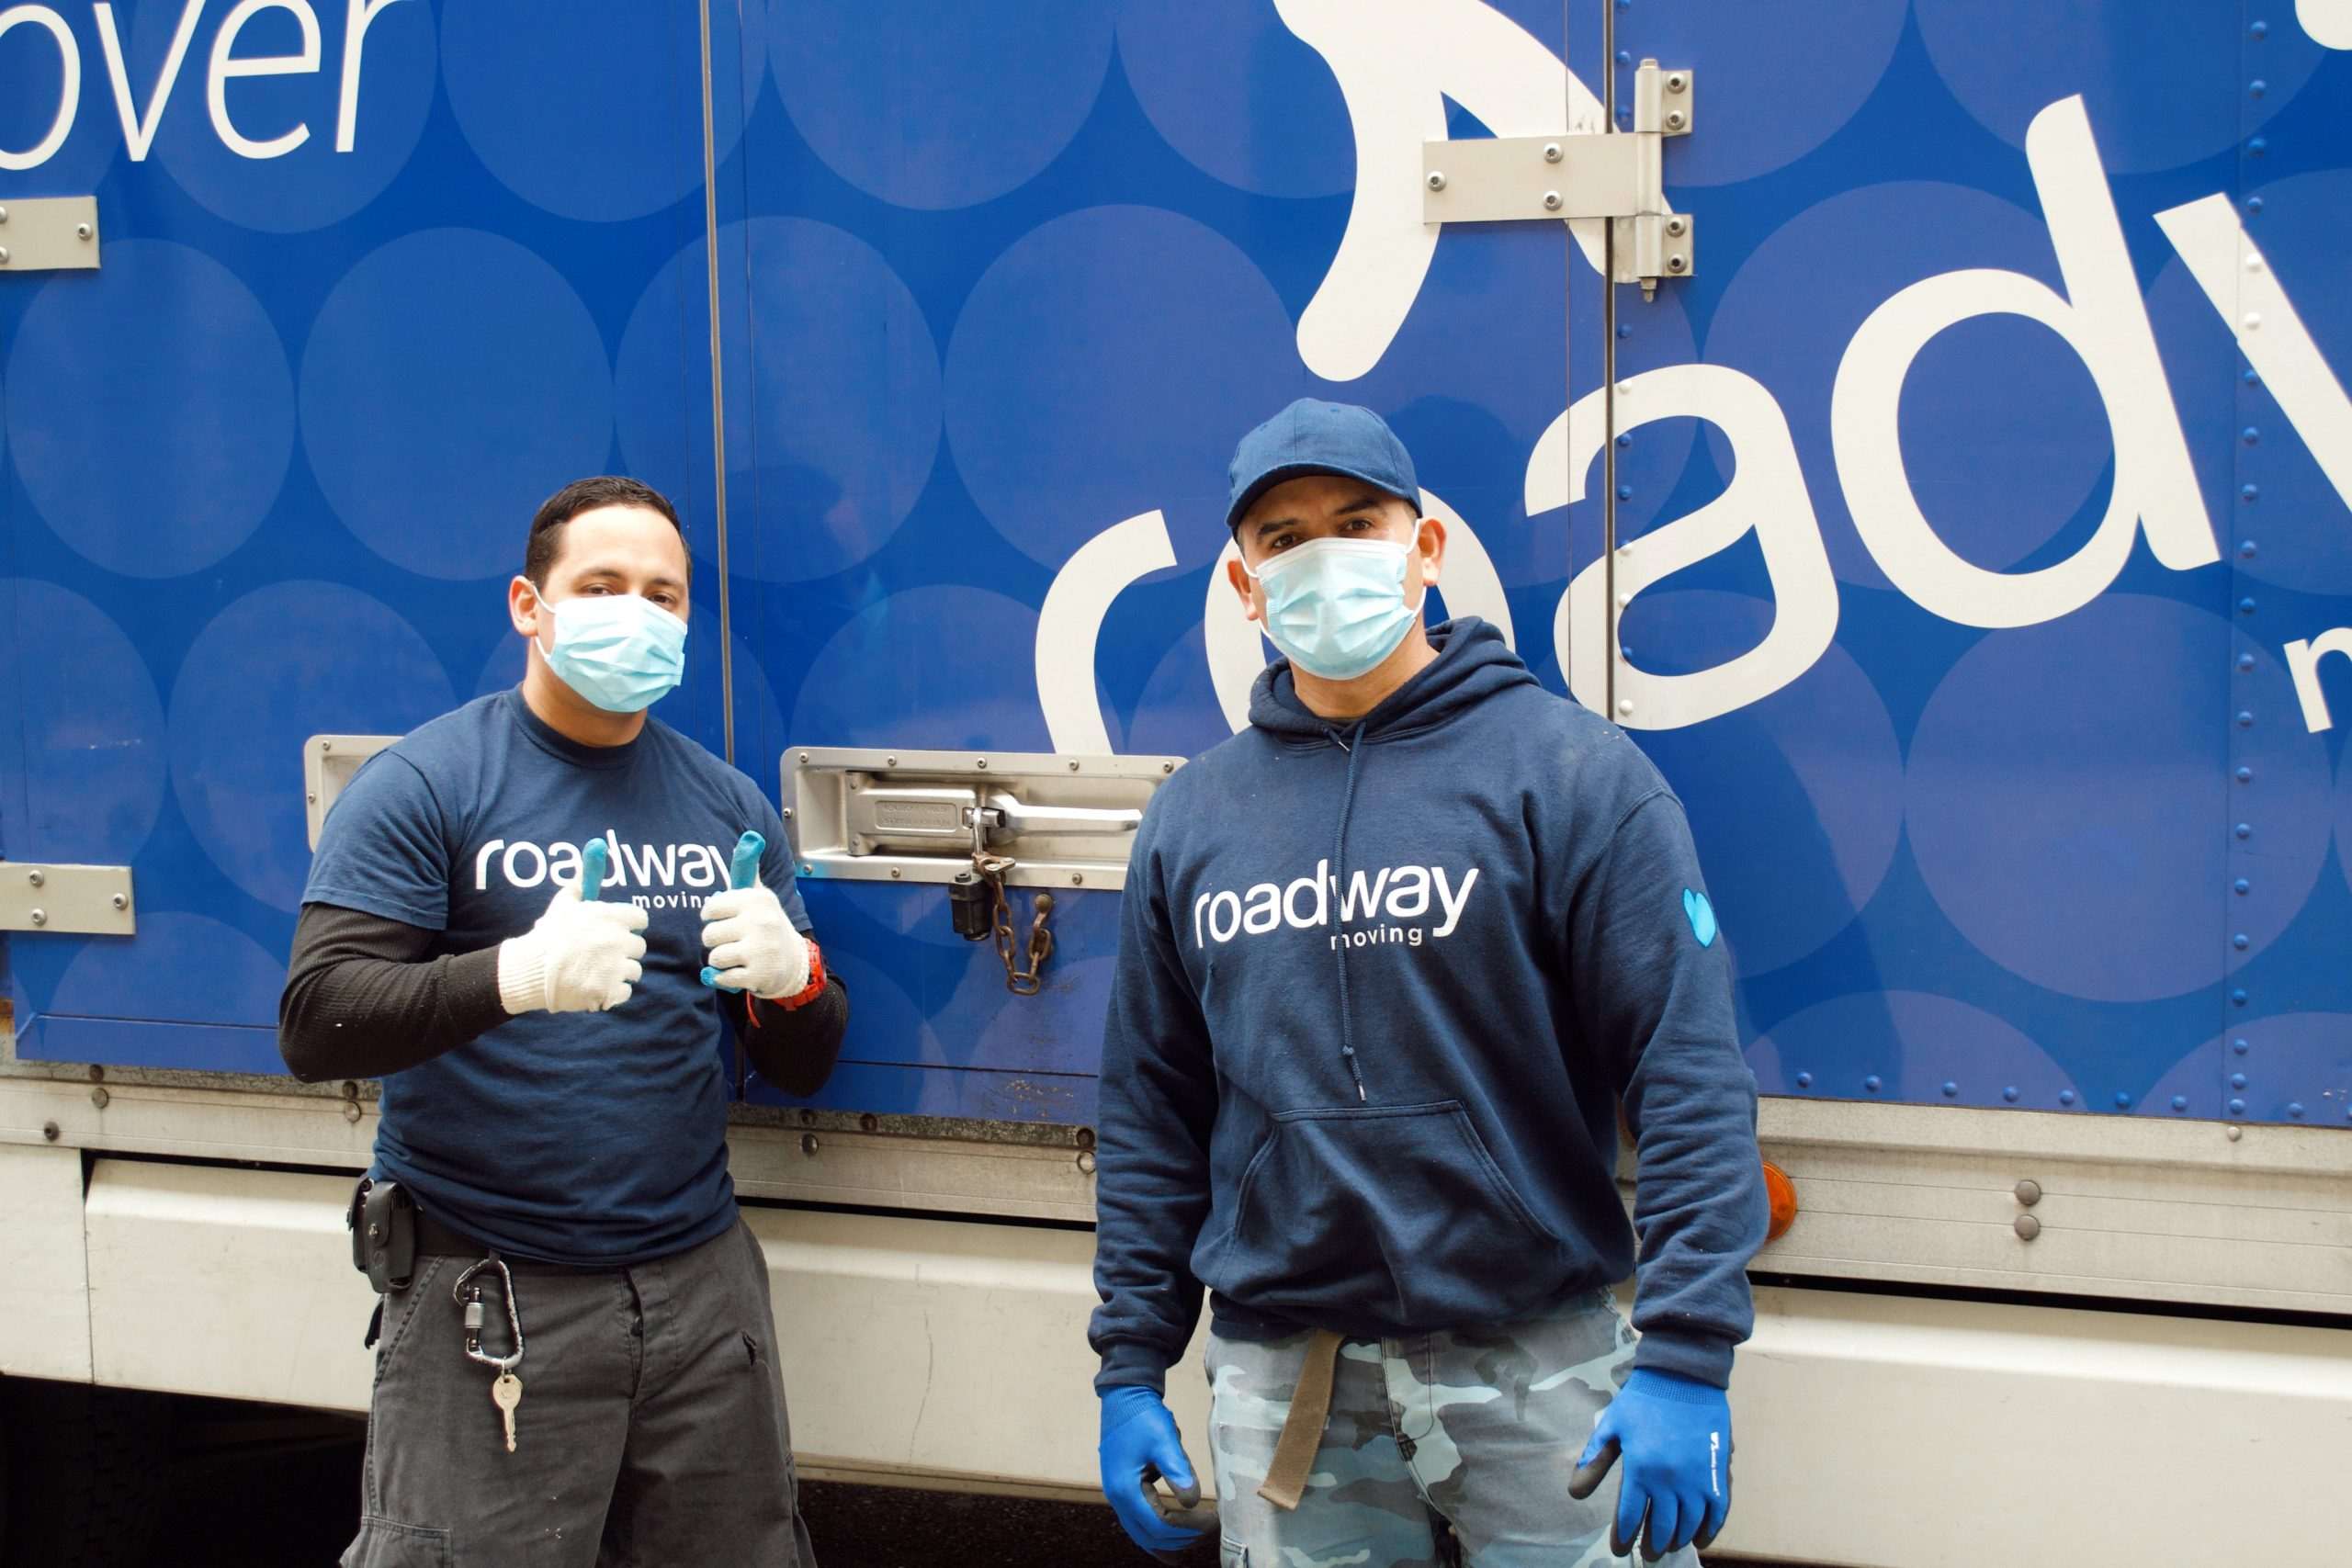 NYC Moving during COVID-19 outbreak